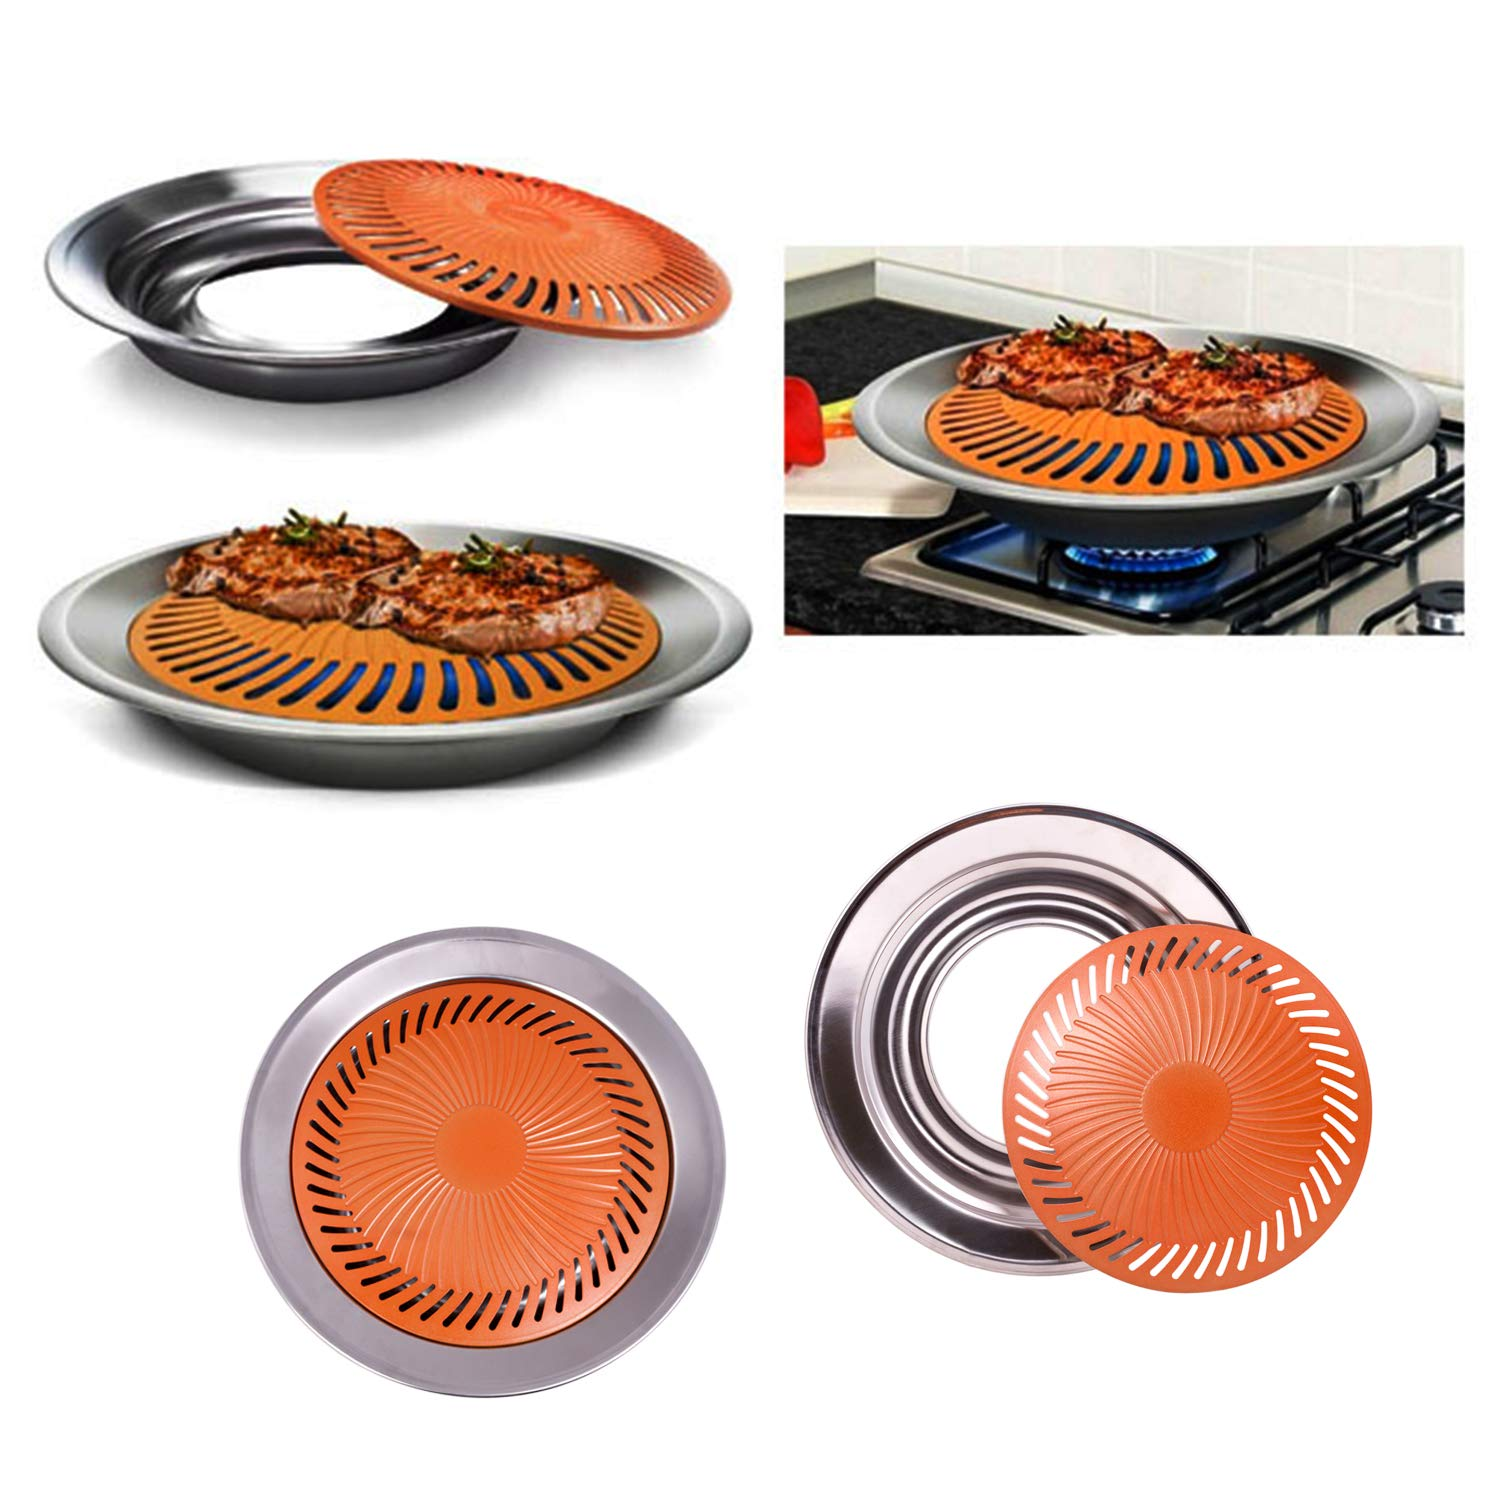 Stovetop Grill – Smokeless Grill – Non-Stick Stove Top BBQ Grill - Copper